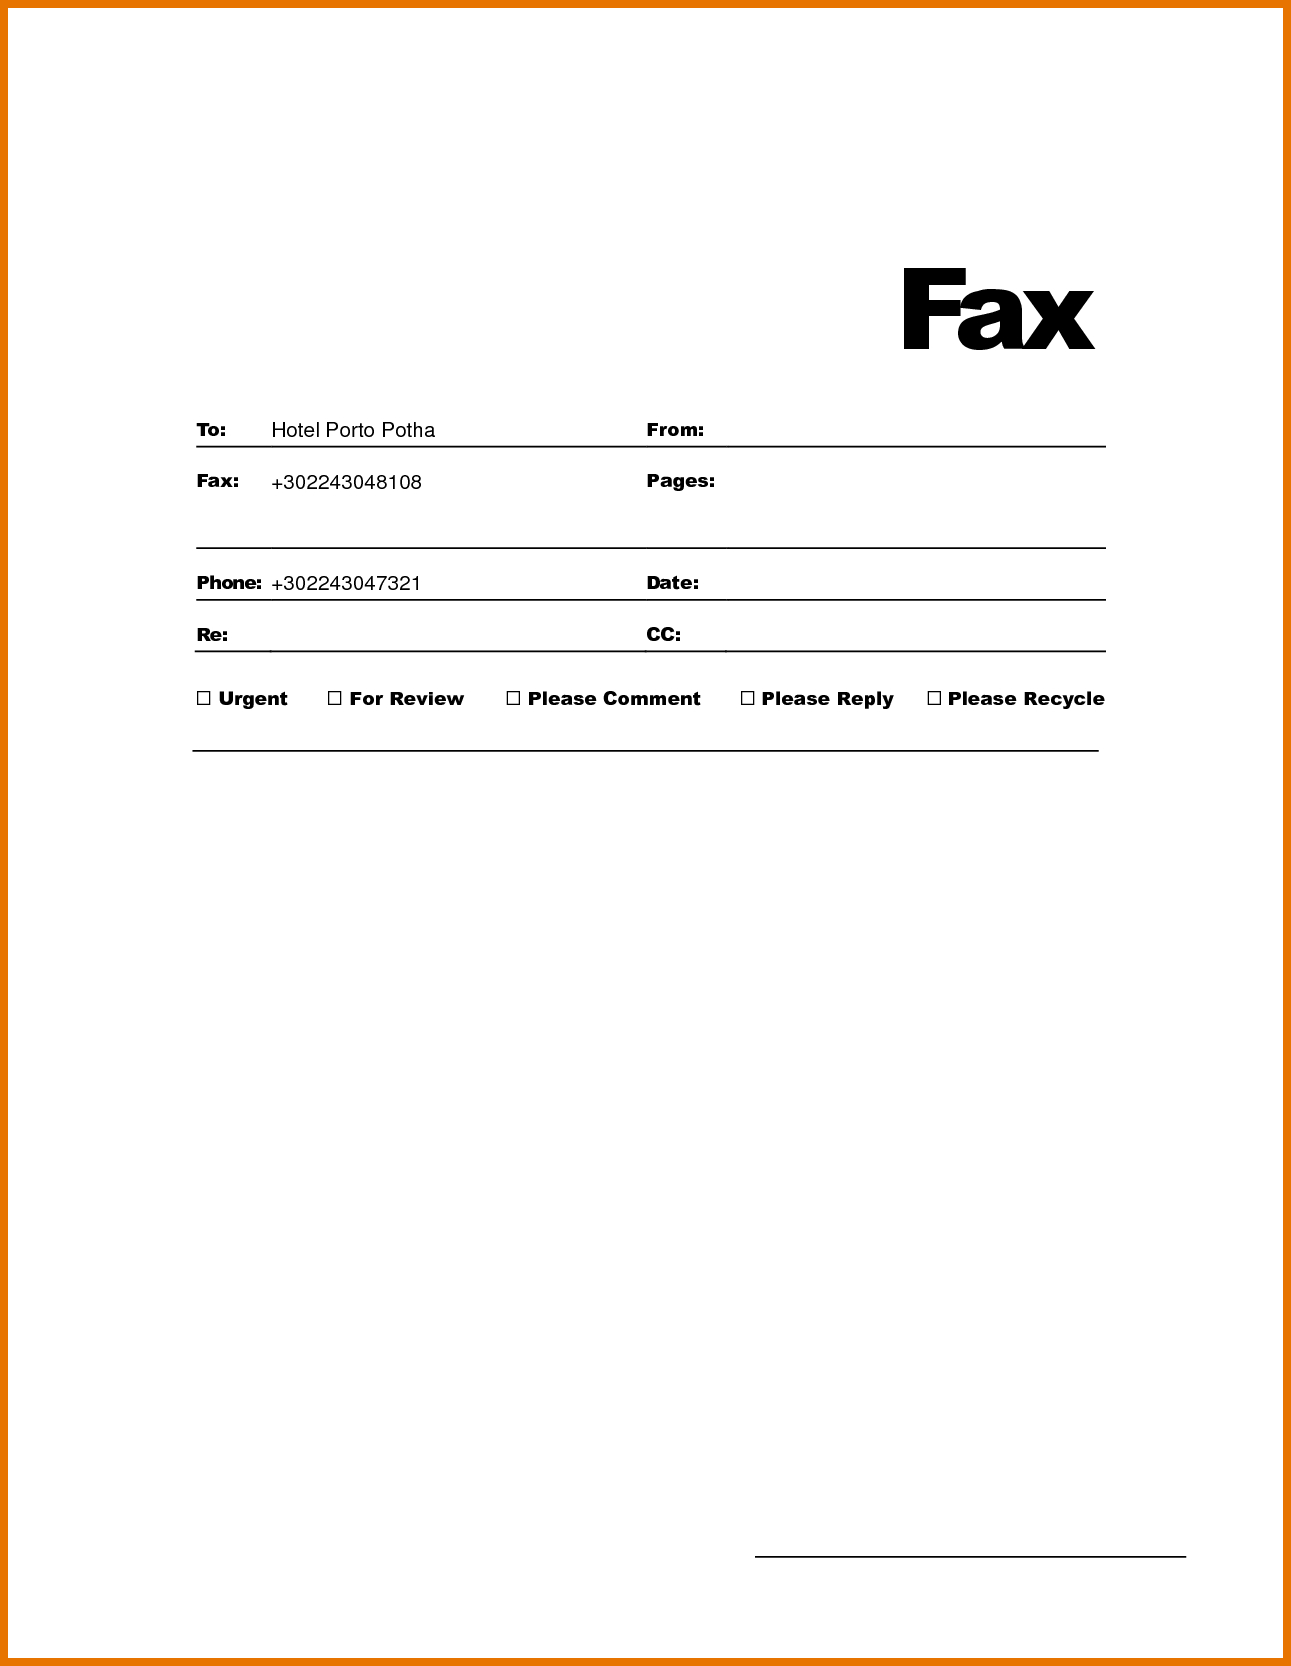 Fax Cover Letter Template Word - Openoffice Fax Cover Template